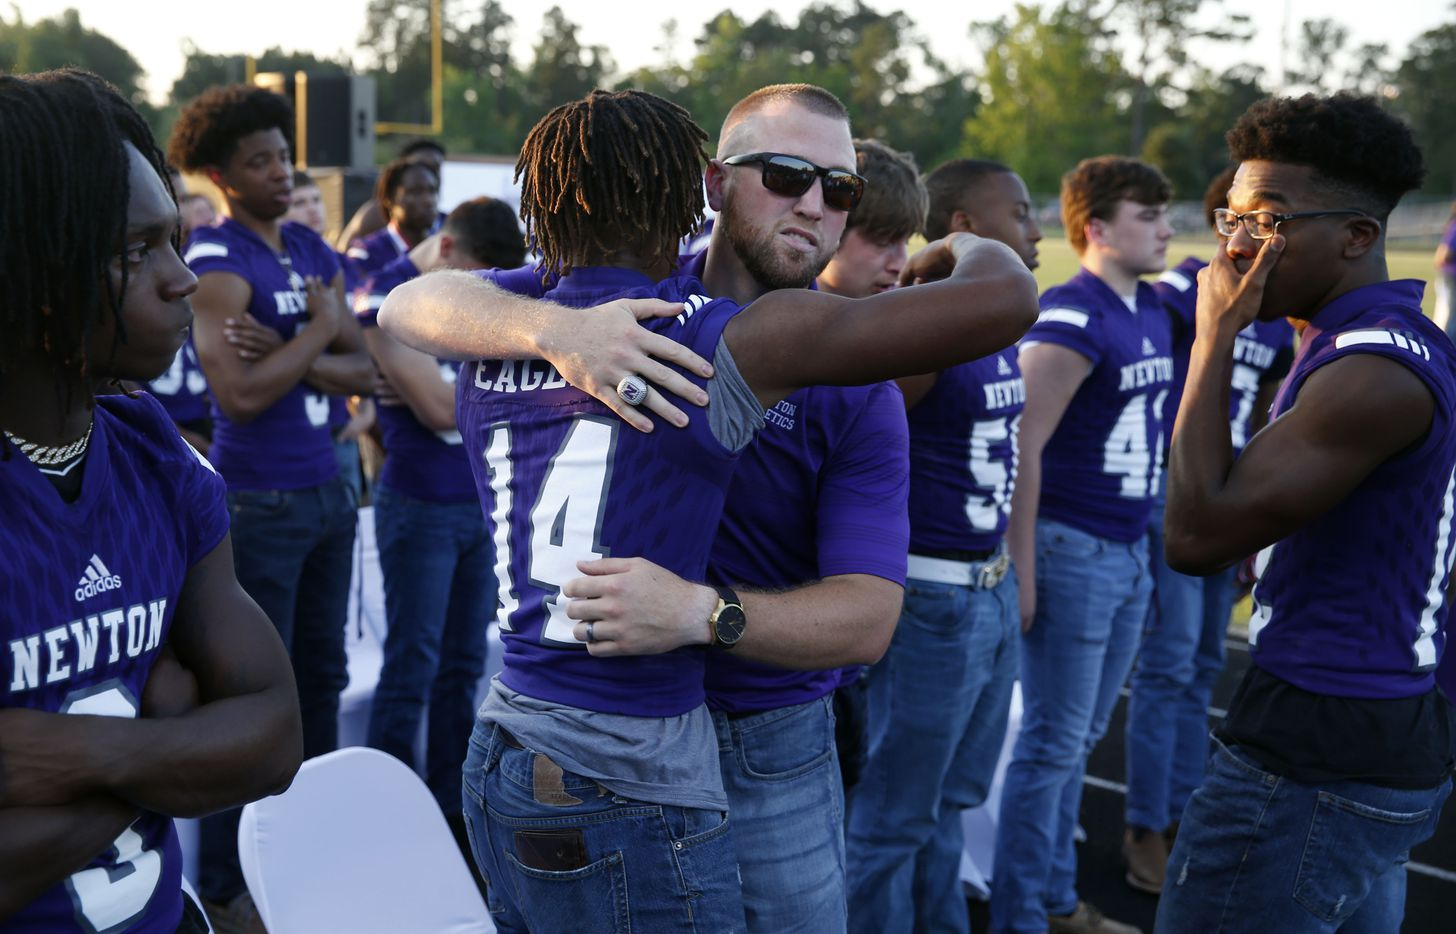 """Newton current head football coach and son Drew Johnston hugs Newton's Dominique Seastrunk (14) during the memorial service for Newton High School head football coach William Theodore """"W.T."""" Johnston at Curtis Barbay Field at Newton High School in Newton, Texas on Wednesday, May 15, 2019. (Vernon Bryant/The Dallas Morning News)"""